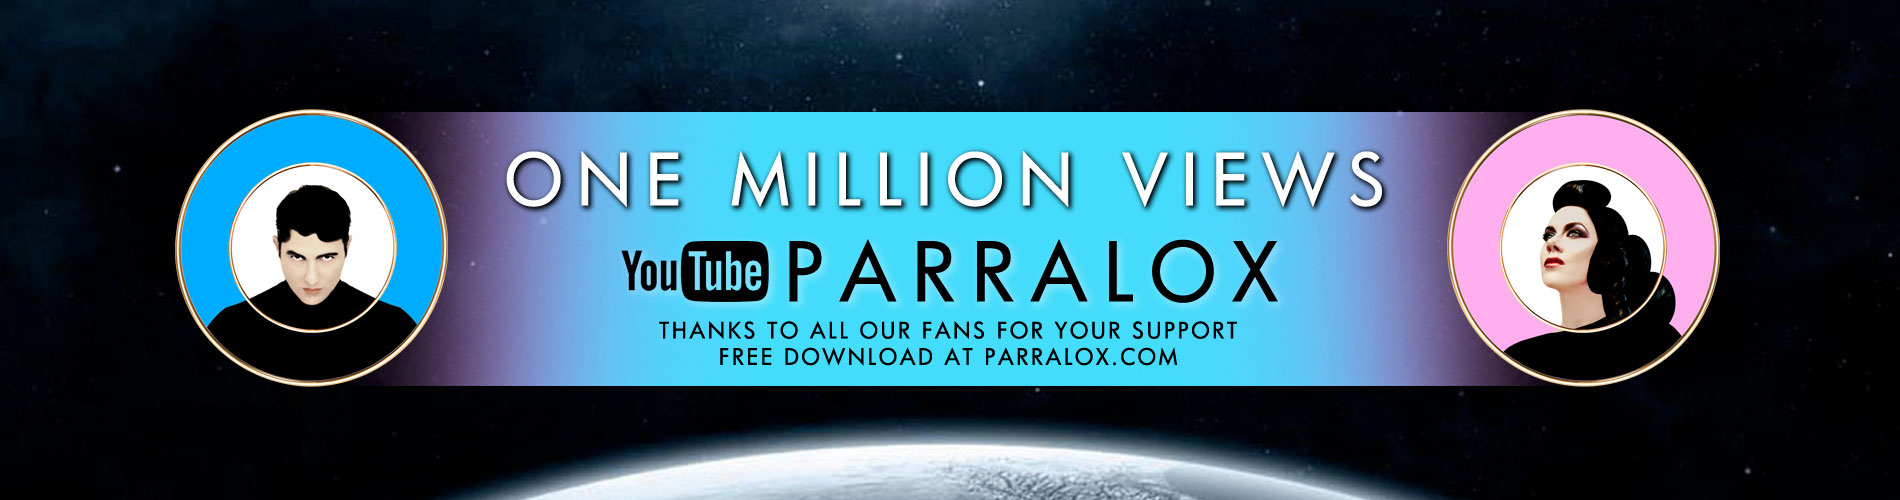 Parralox - One Million Views on YouTube